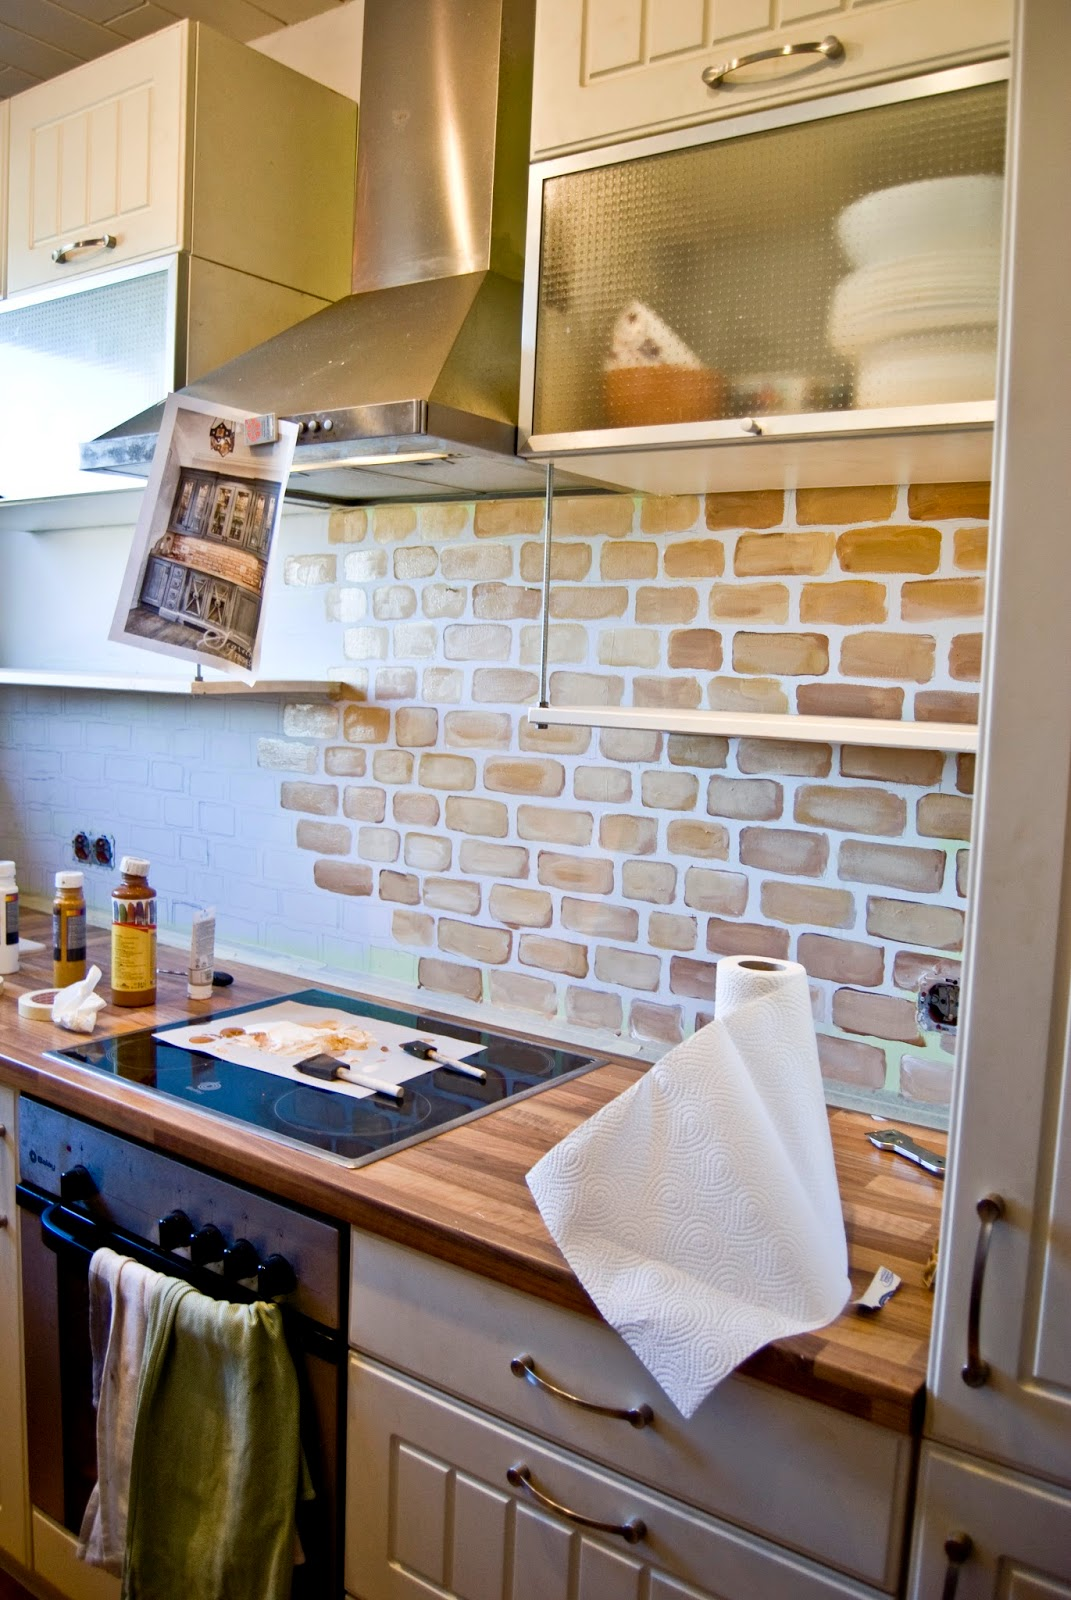 Remodelaholic | Tiny Kitchen Renovation with Faux Painted ... on small kitchen design, small kitchen layouts, small kitchen makeovers, small kitchen entryways, small white kitchen ideas, small kitchen remodel, small kitchen decorating ideas, small country kitchens on a budget, small kitchen light ideas, unique kitchen remodeling ideas, small kitchen plans l-shaped, small kitchen cottage style, spanish mediterranean-style decor ideas, small kitchen ideas home, small kitchen remodeling ideas, great kitchen remodeling ideas, small kitchen bath ideas, small kitchen family rooms, small kitchen dishwasher ideas, small kitchen shelf ideas,